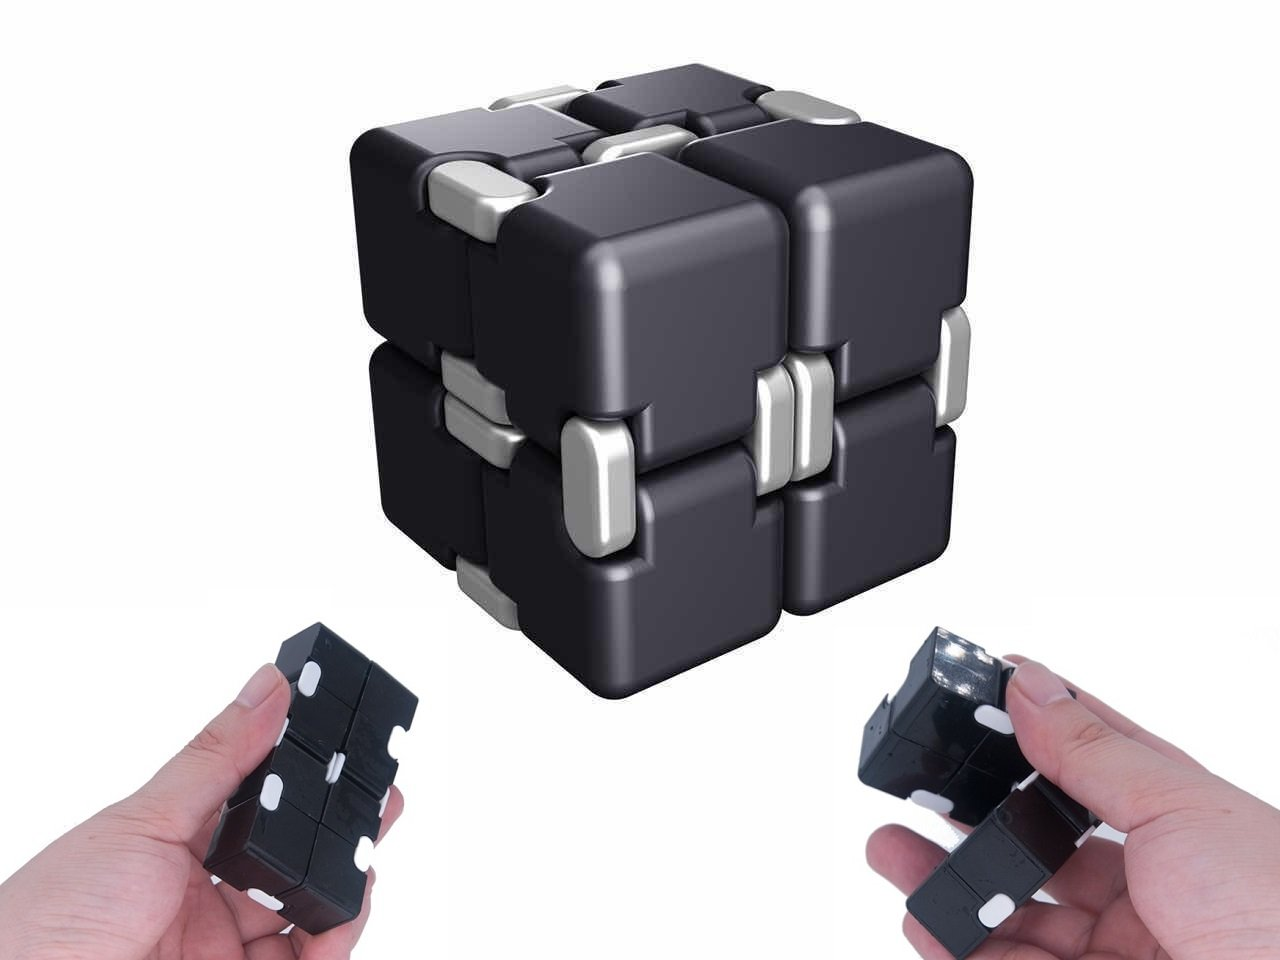 Infinity Magic Cube EDC Toy - Fidget Rubiks Cube Pressure Reduction Toys, 8 Block of Spining Cube Fidgeting, Killing Time Toys Infinite Cube For ADD, ADHD, Anxiety, Autism, Plastic, Black For Ideahome